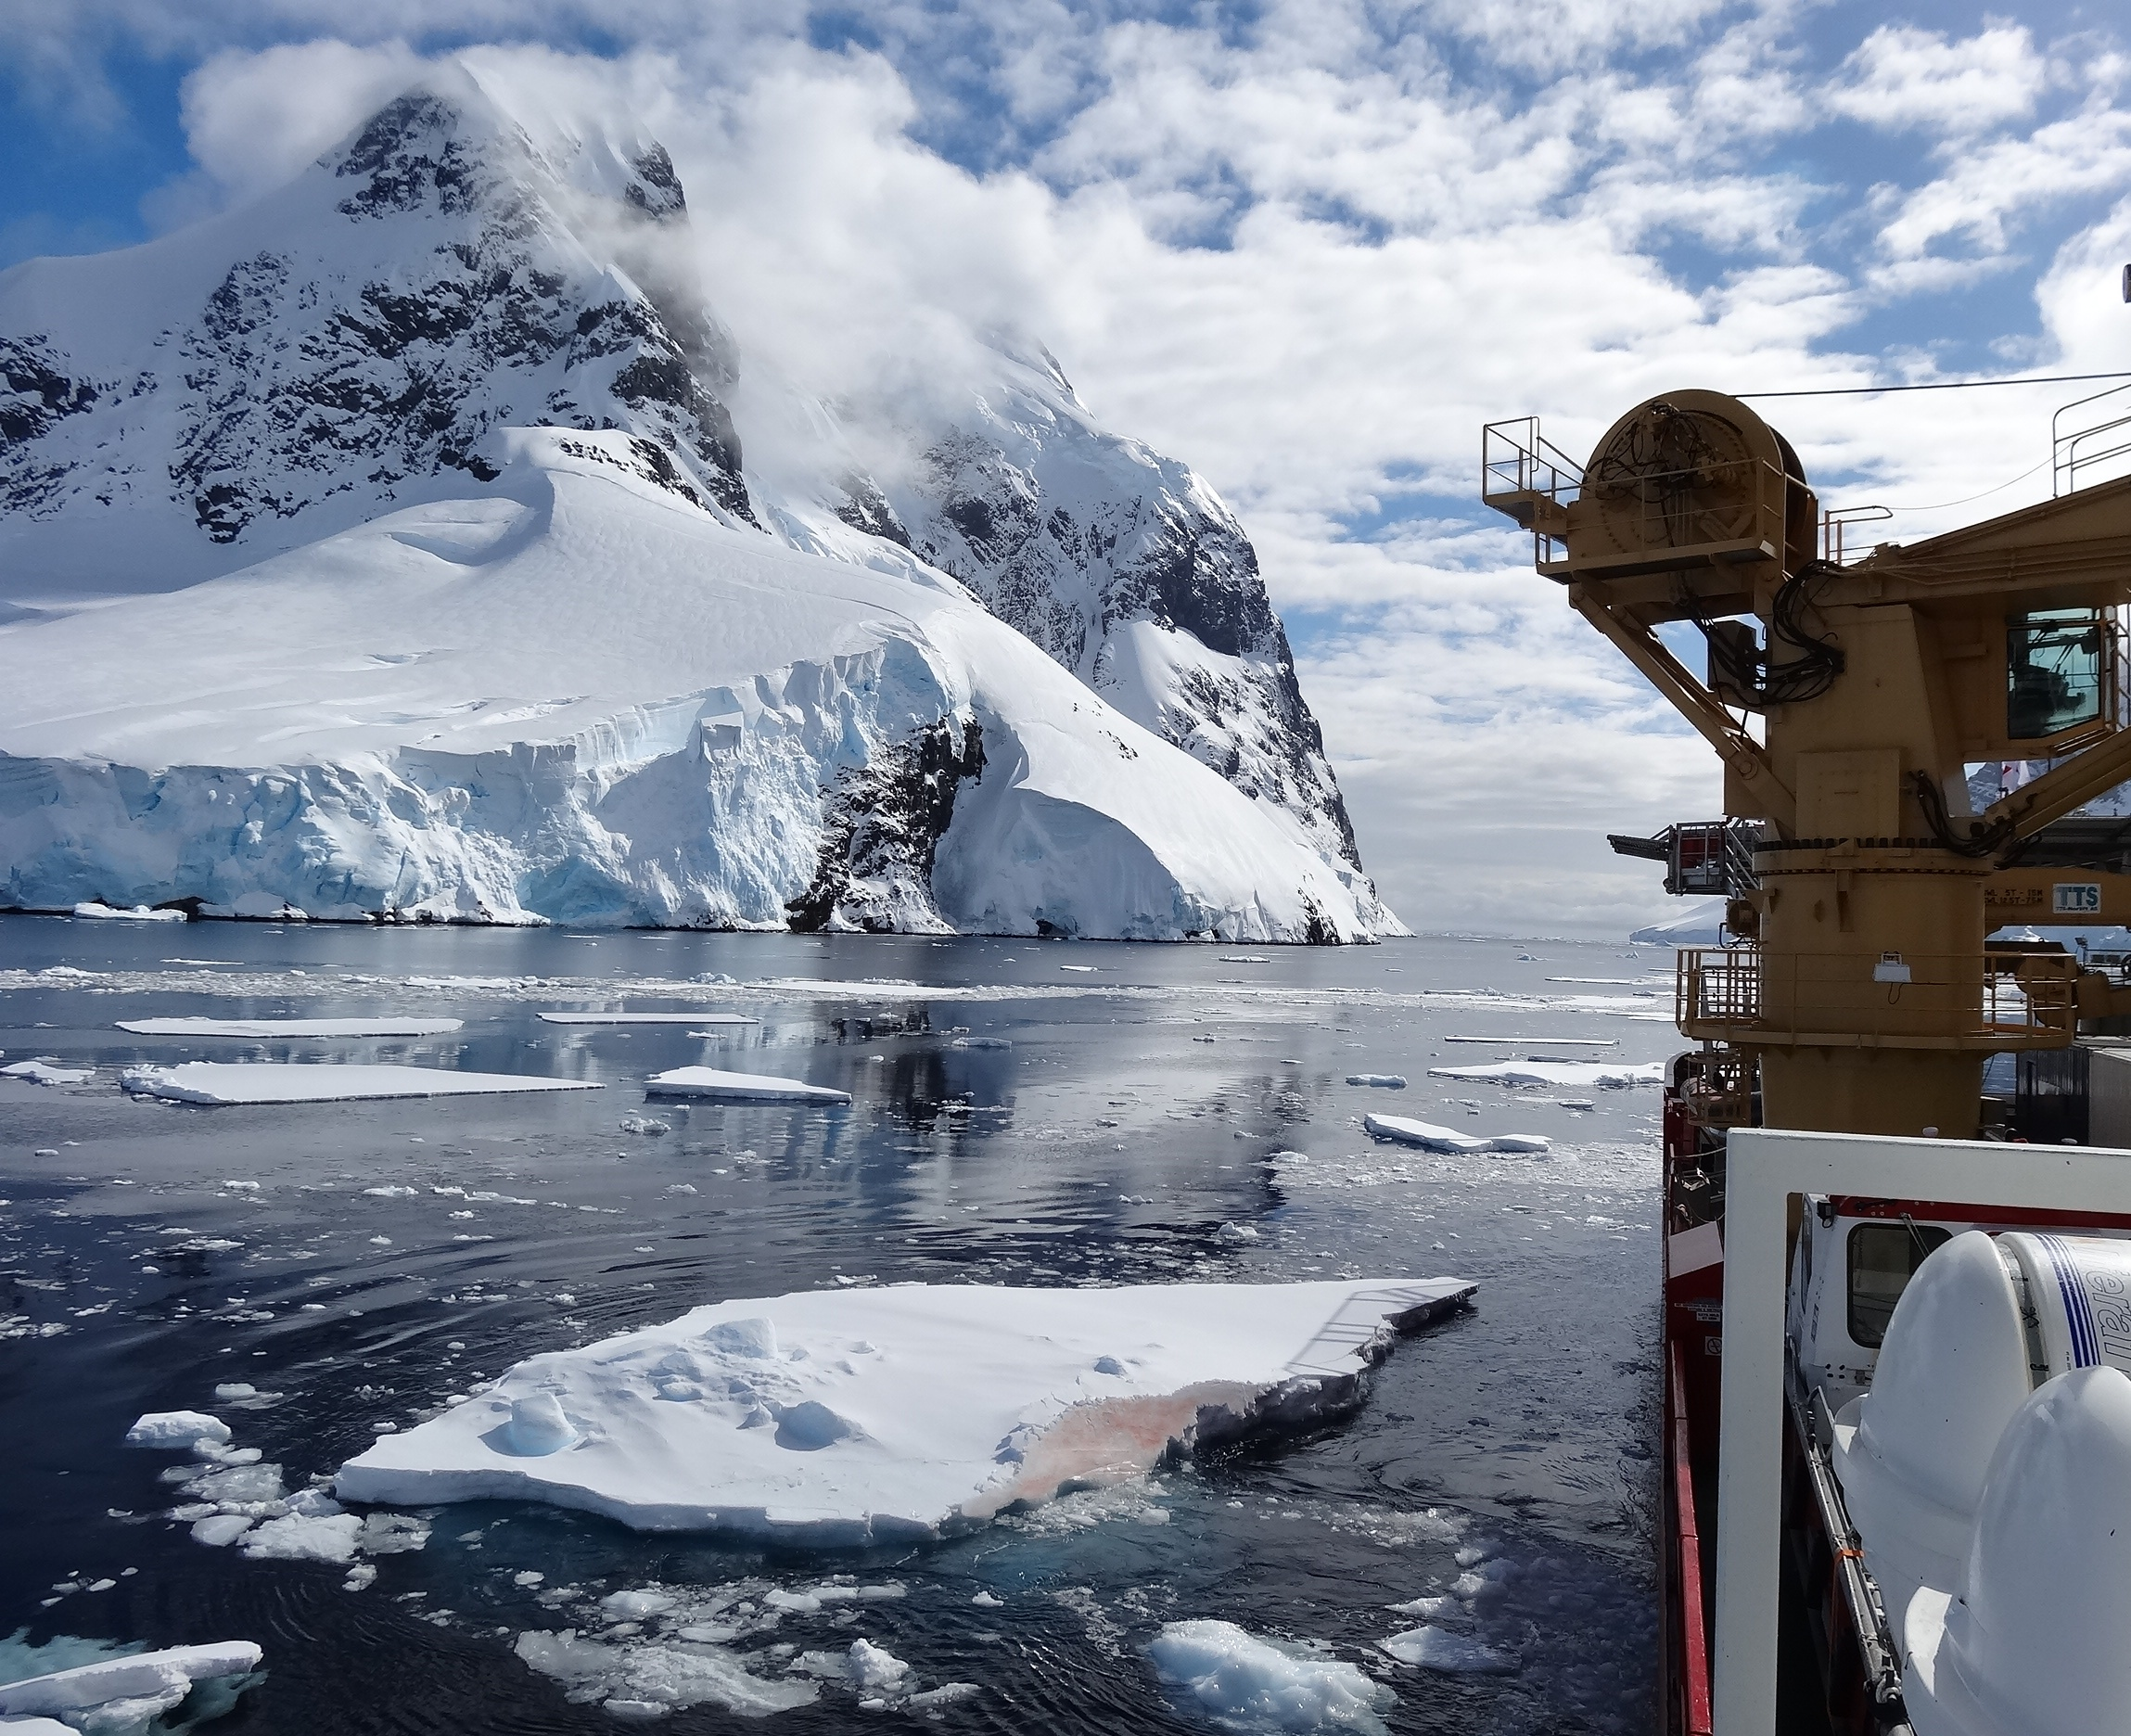 Picture of a ship at sea close to ice bergs.